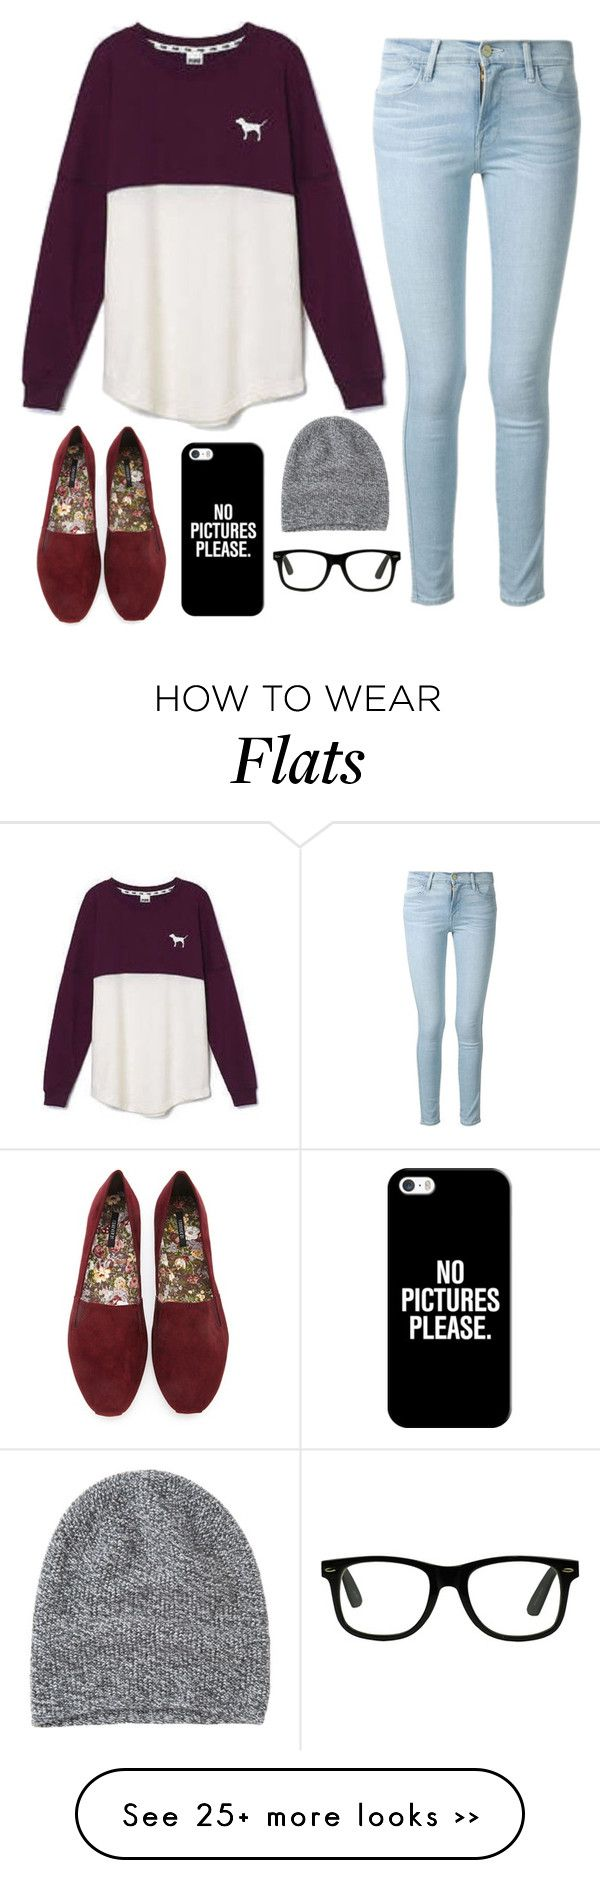 """...."" by pineapple5415 on Polyvore featuring Frame Denim, Victoria's Secret, Forever 21, Casetify and Toast"